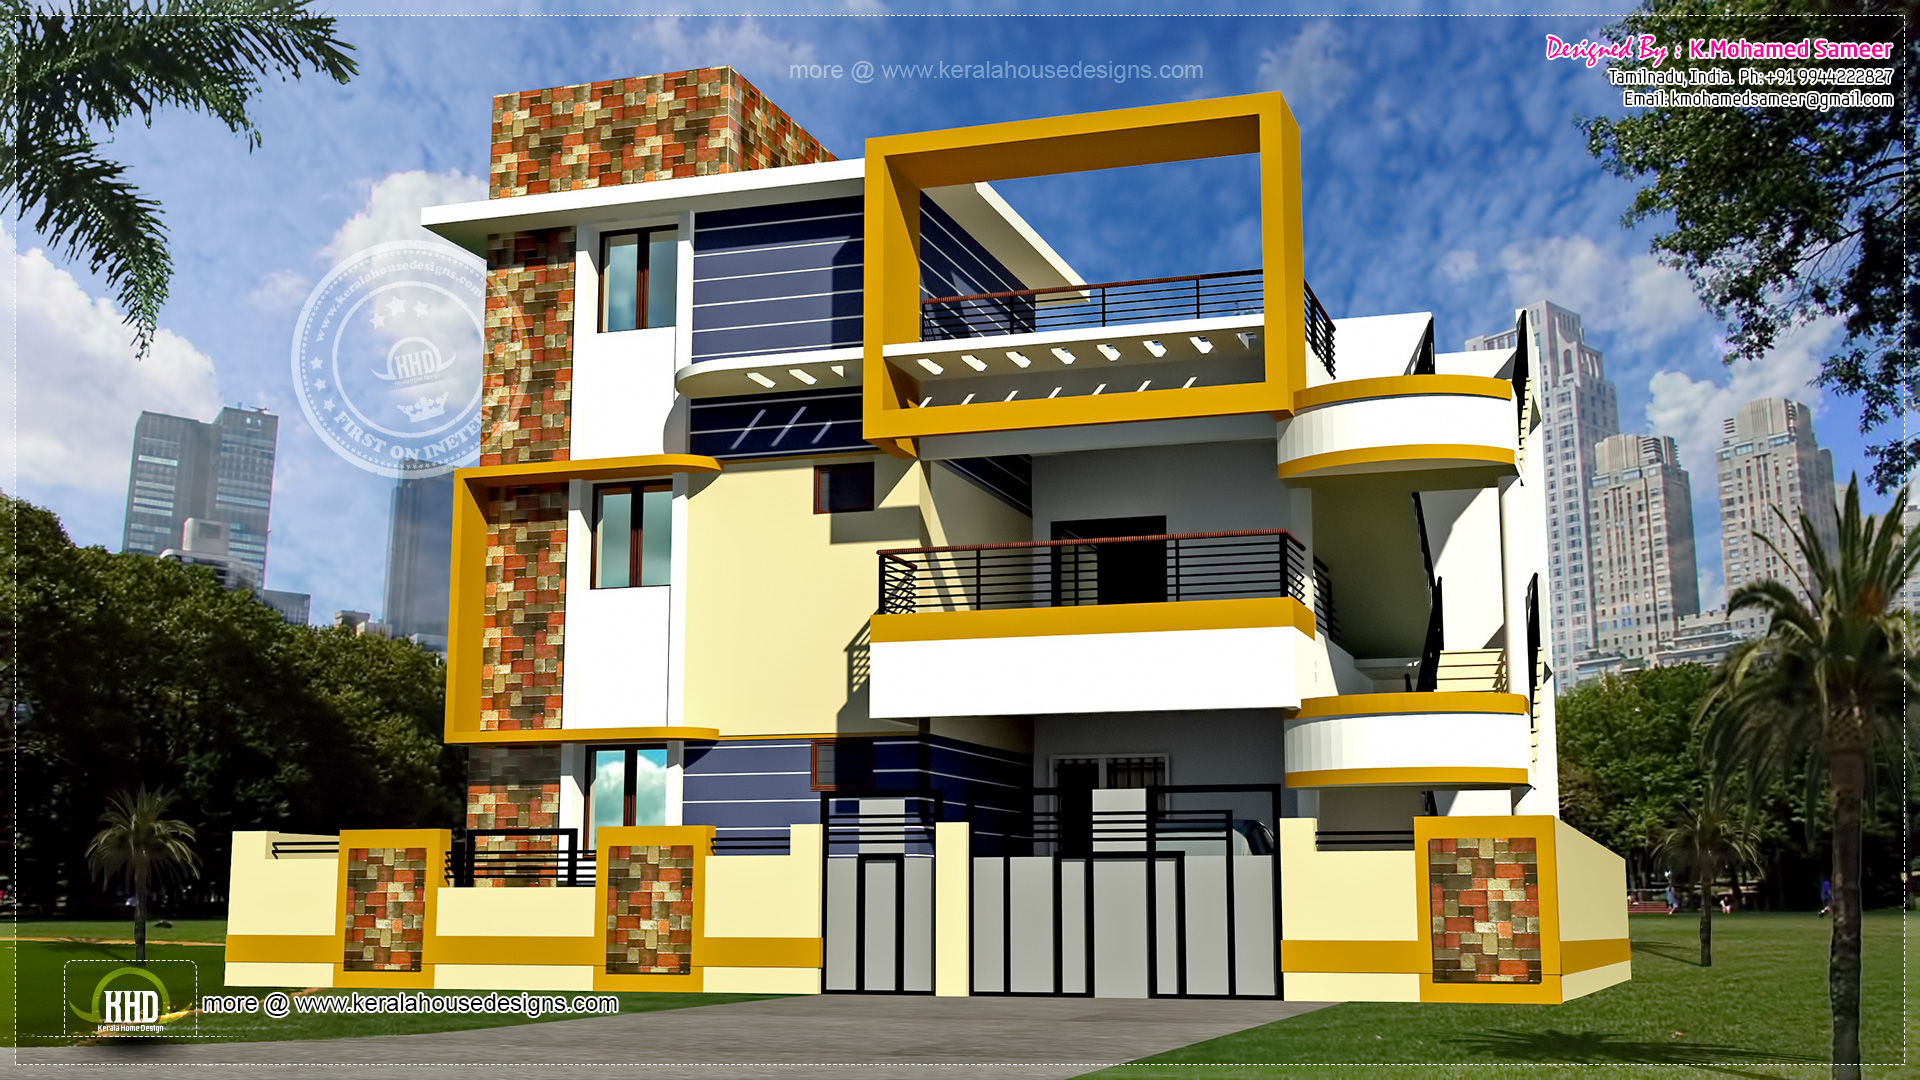 Modern 3 floor tamilnadu house design kerala home design Building plans indian homes